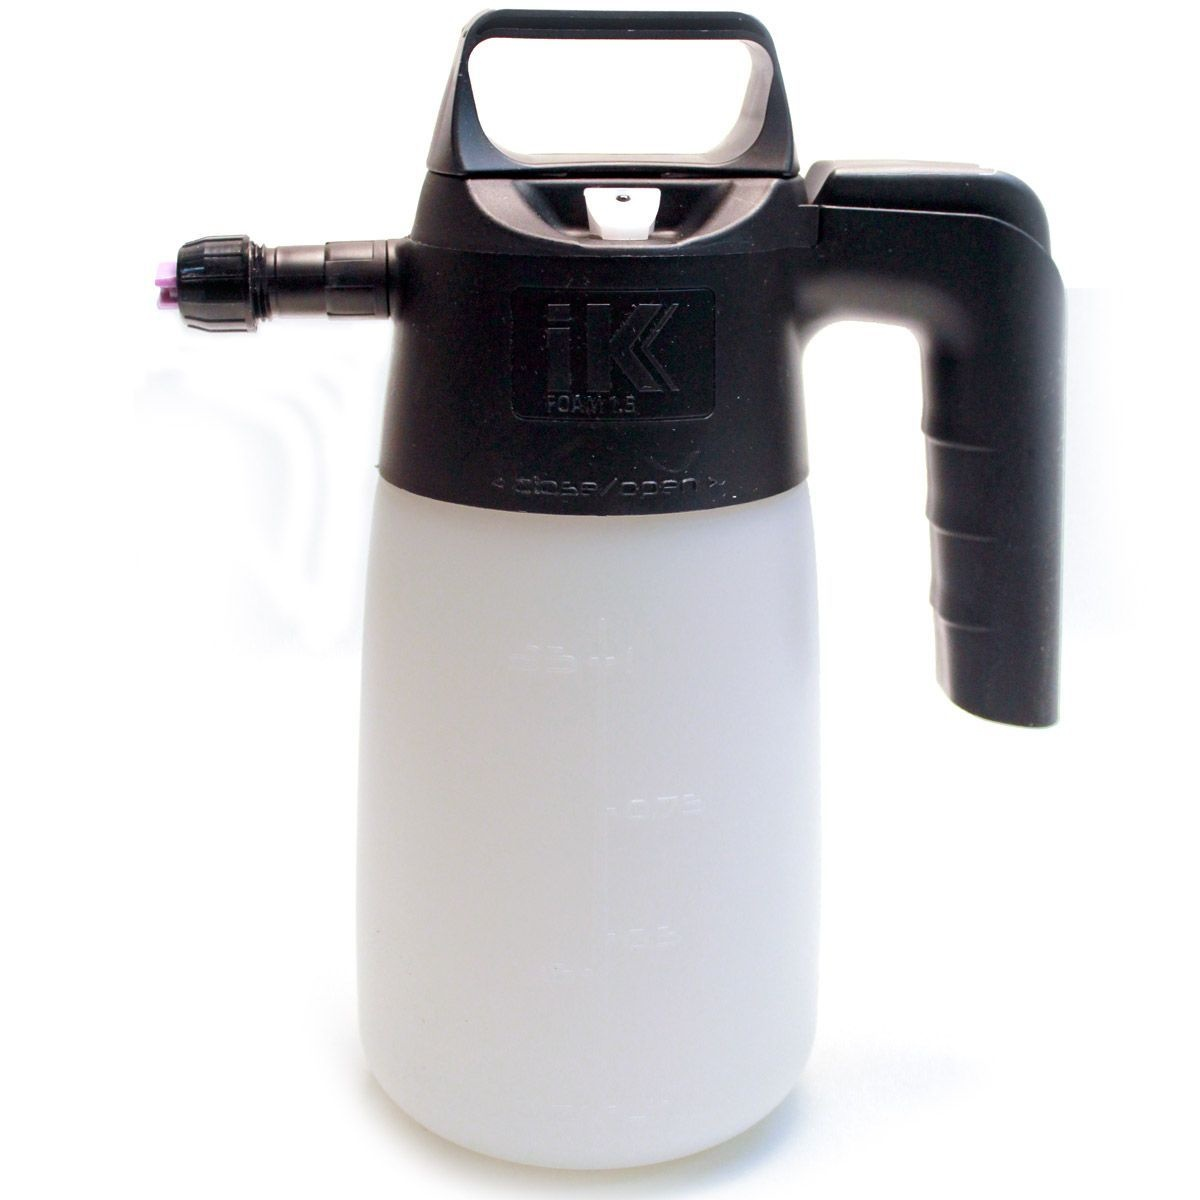 Snow Foam Sprayer 1.5L-1